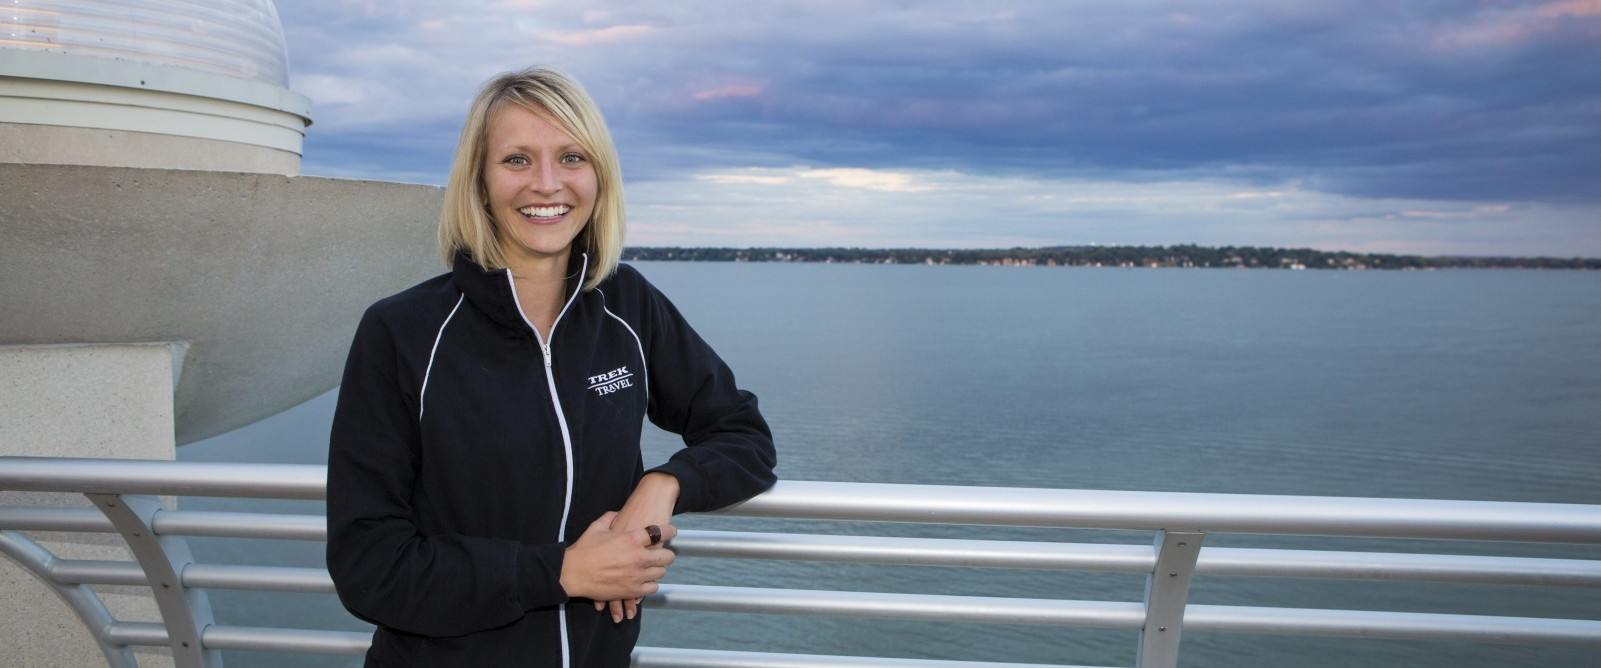 Meet Kari Kruckow, Trek Travel Trip Consultant